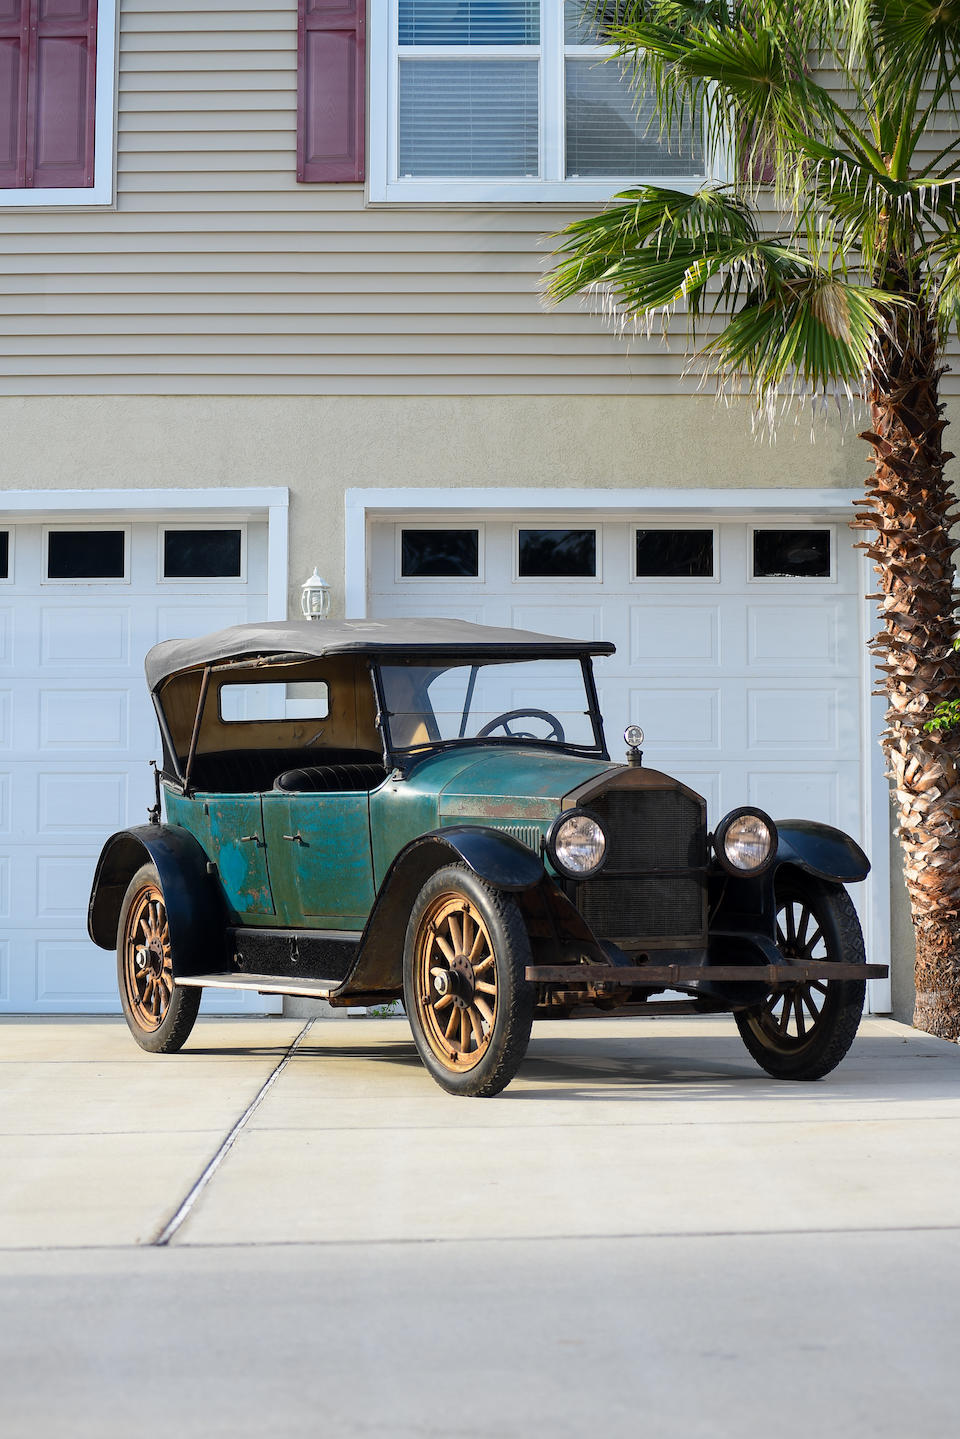 <b>1920 Stearns-Knight L4 Touring</b><br />Chassis no. L9959<br />Engine no. L9959